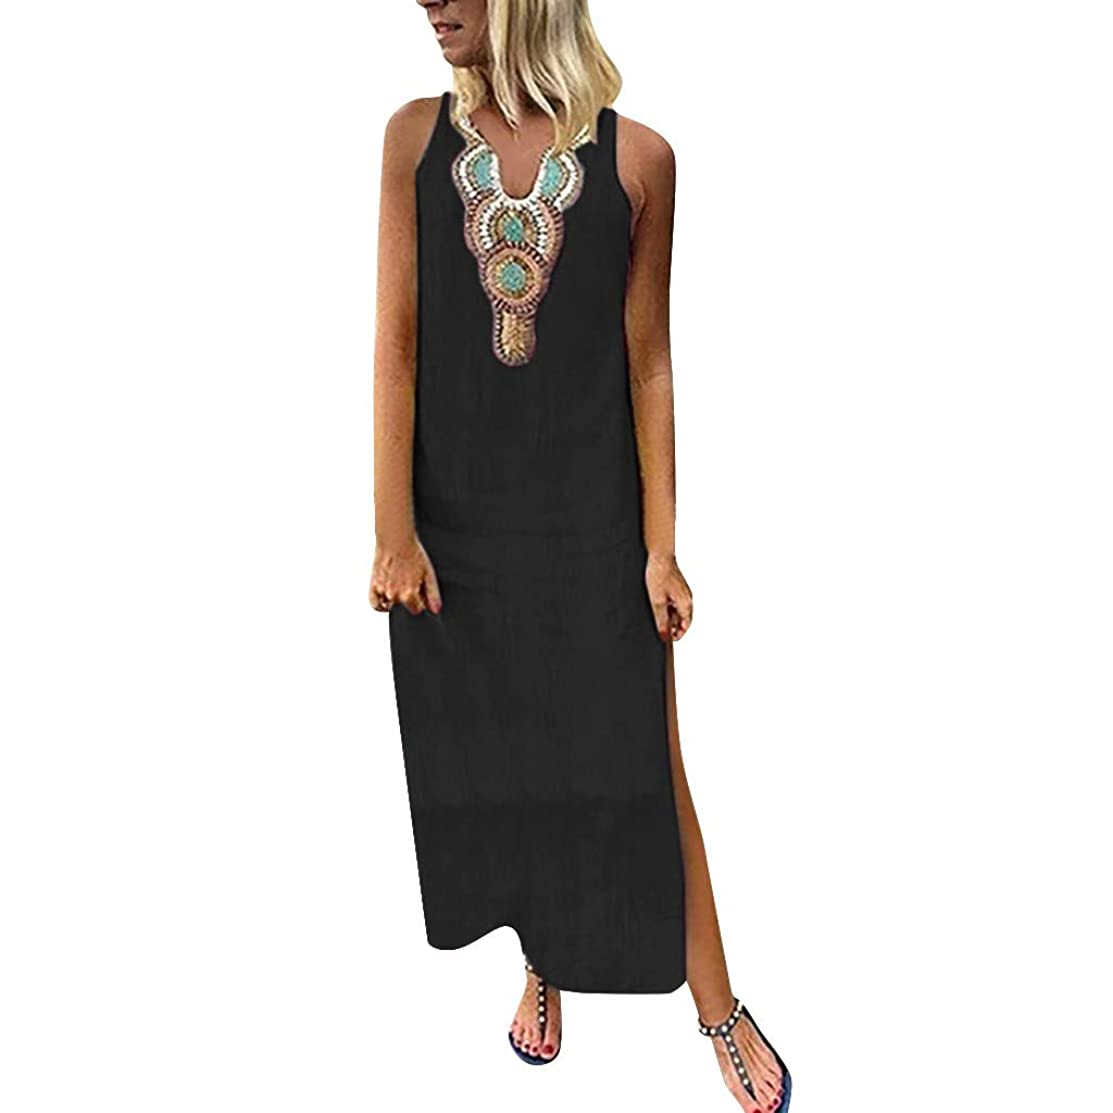 DAYPLAY women's dresses Summer Printed Sleeveless V-Neck Maxi Split Hem Baggy Kaftan Long Dress 2019 Sale